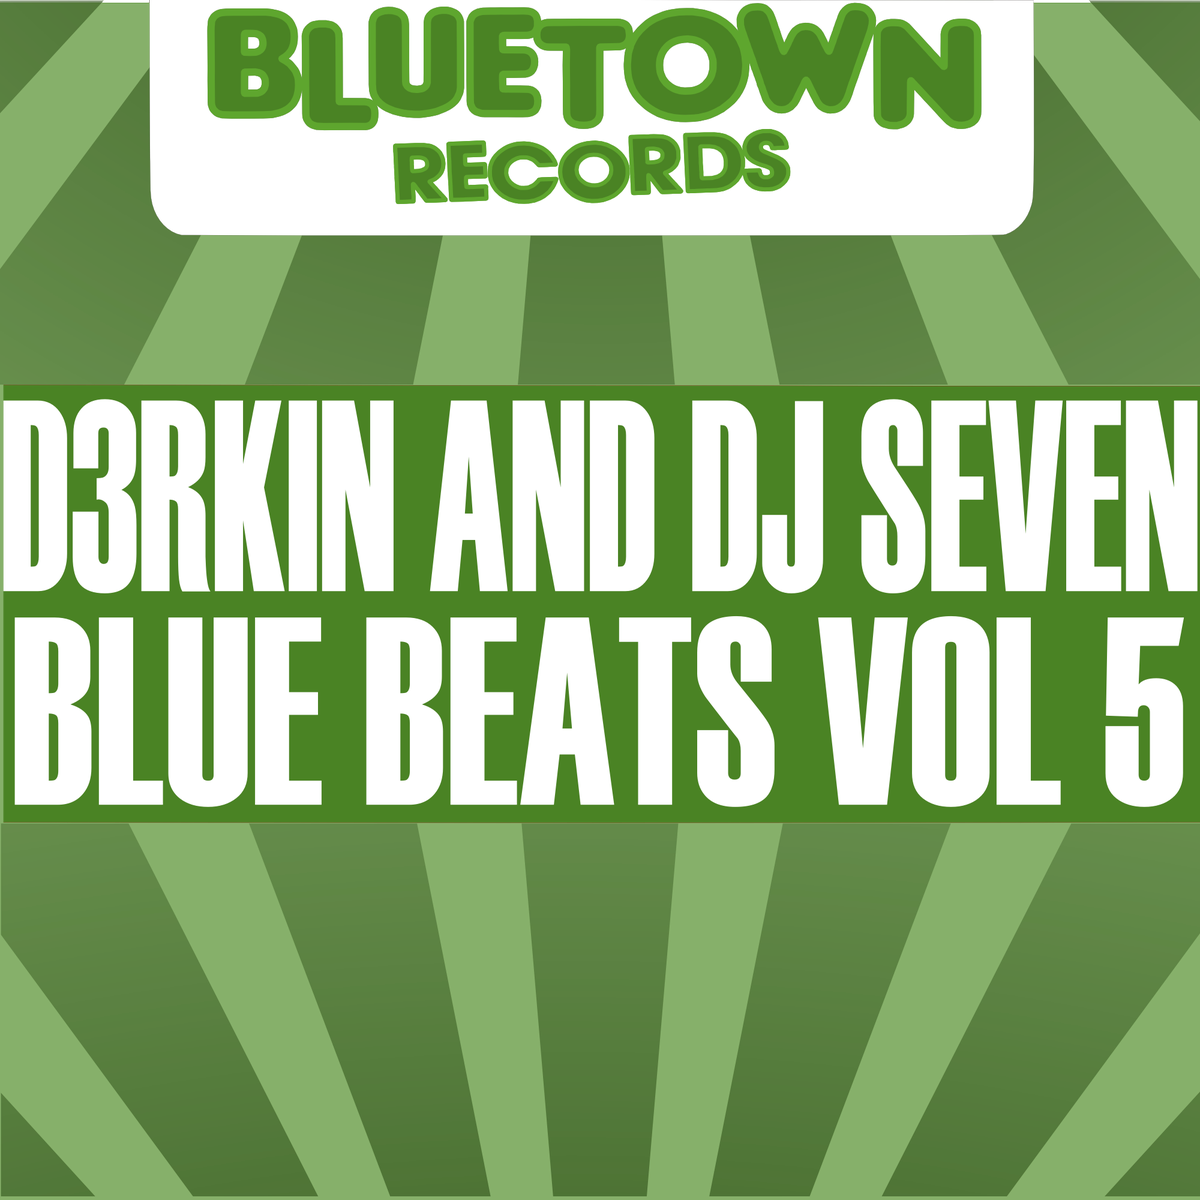 Out now! Blue Beats Volume 5 with D3rkin and DJ Seven Chicago  http://www. traxsource.com/title/773182/b luebeats-volume-5 &nbsp; …  #realhousemusic #jackinhouse<br>http://pic.twitter.com/w82XKL2YtS